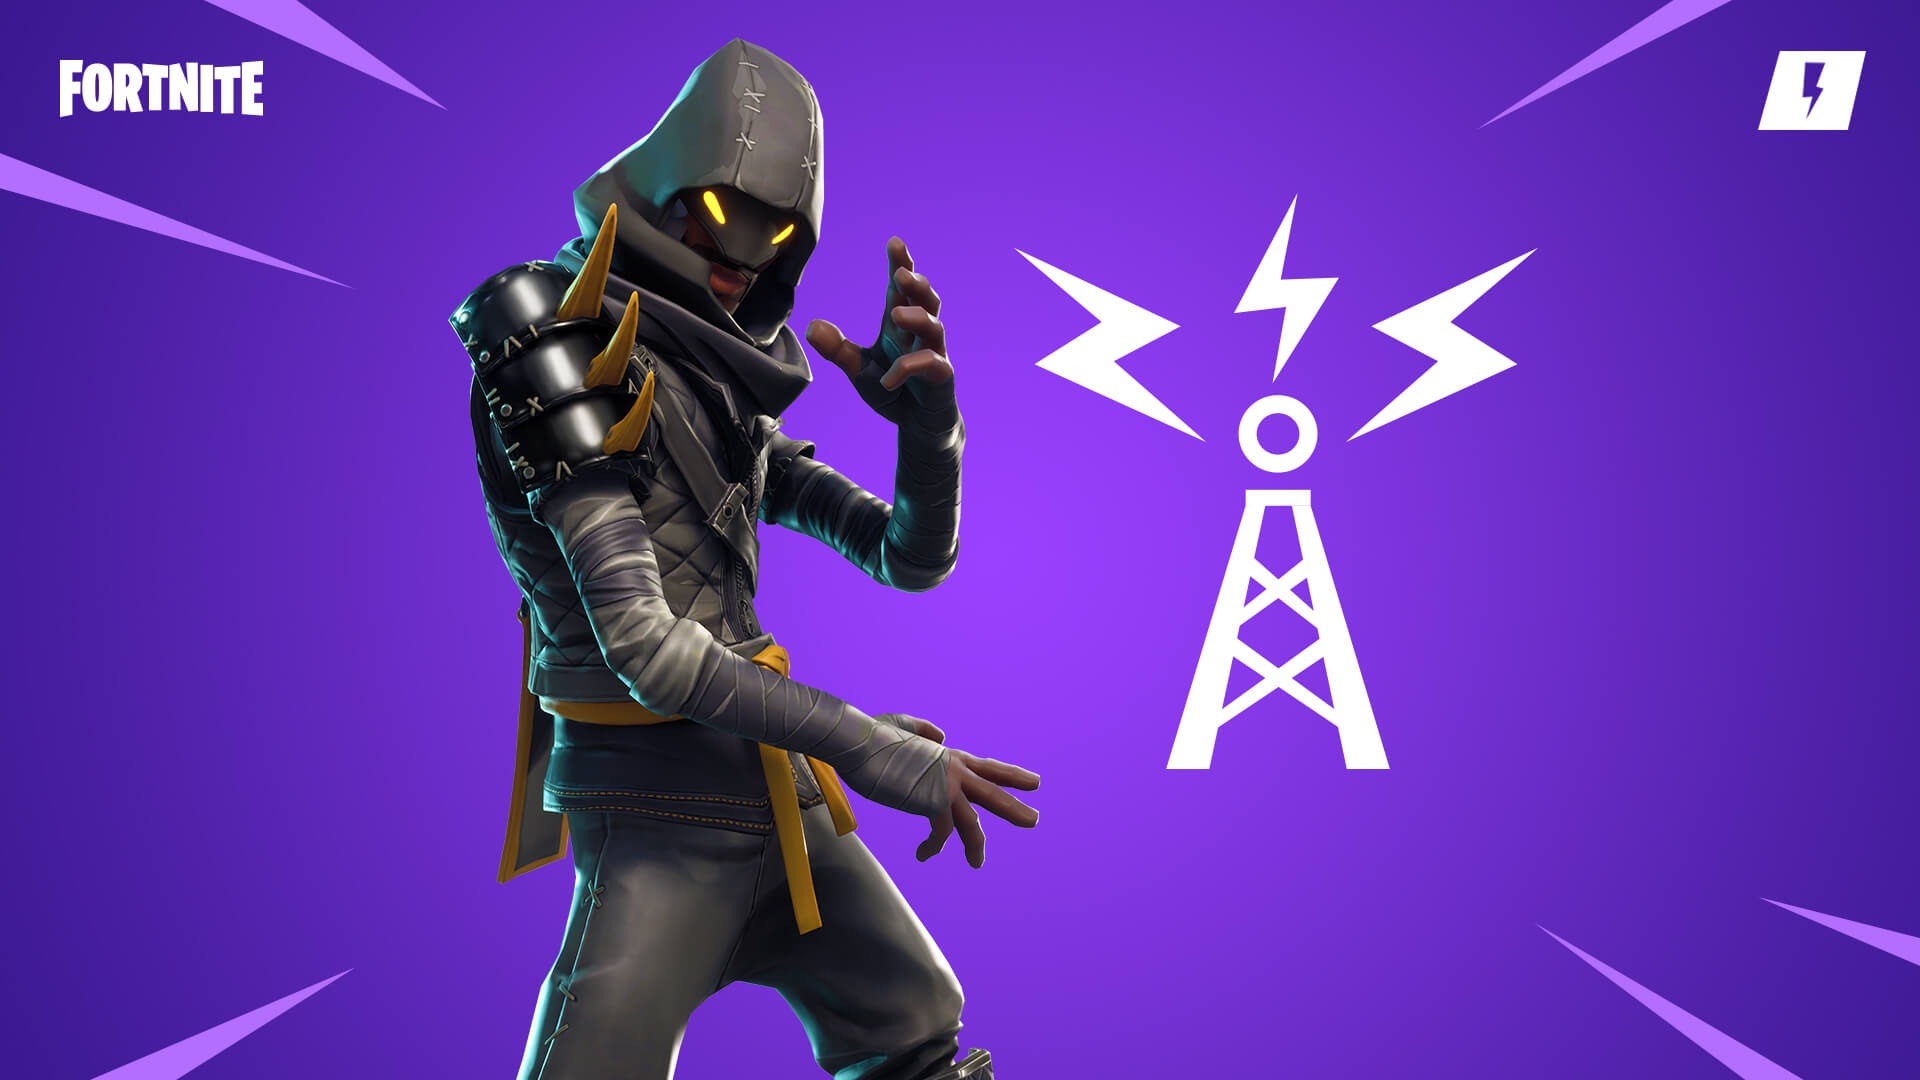 Fortnite%2Fpatch notes%2Fv10 31 patch notes%2Fstw header v10 31 patch notes%2F10StW CloakedStar Mayday Social Purple 1920x1080 8a679f0400d40b8ade5658a190385e96b9a723ea - Описание версии 10.31 для фортнайт